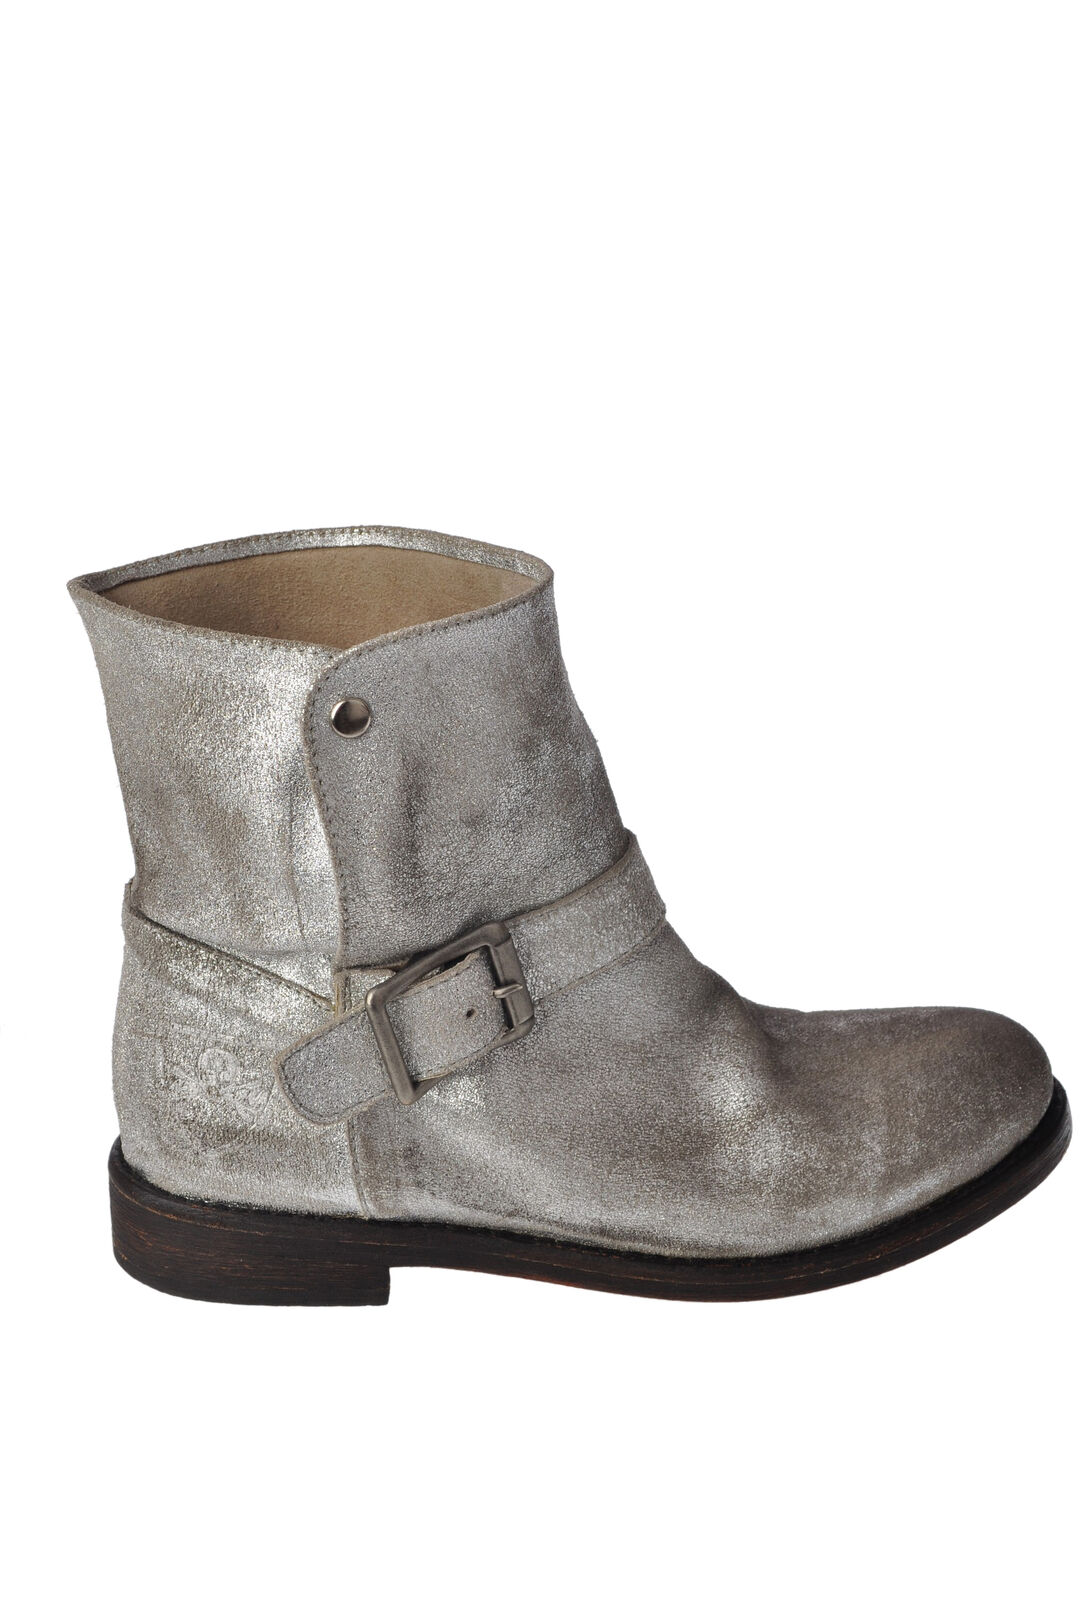 Mr Wolf  -  Ankle boots - Female - - - Silver - 3299019A185544 2b118d